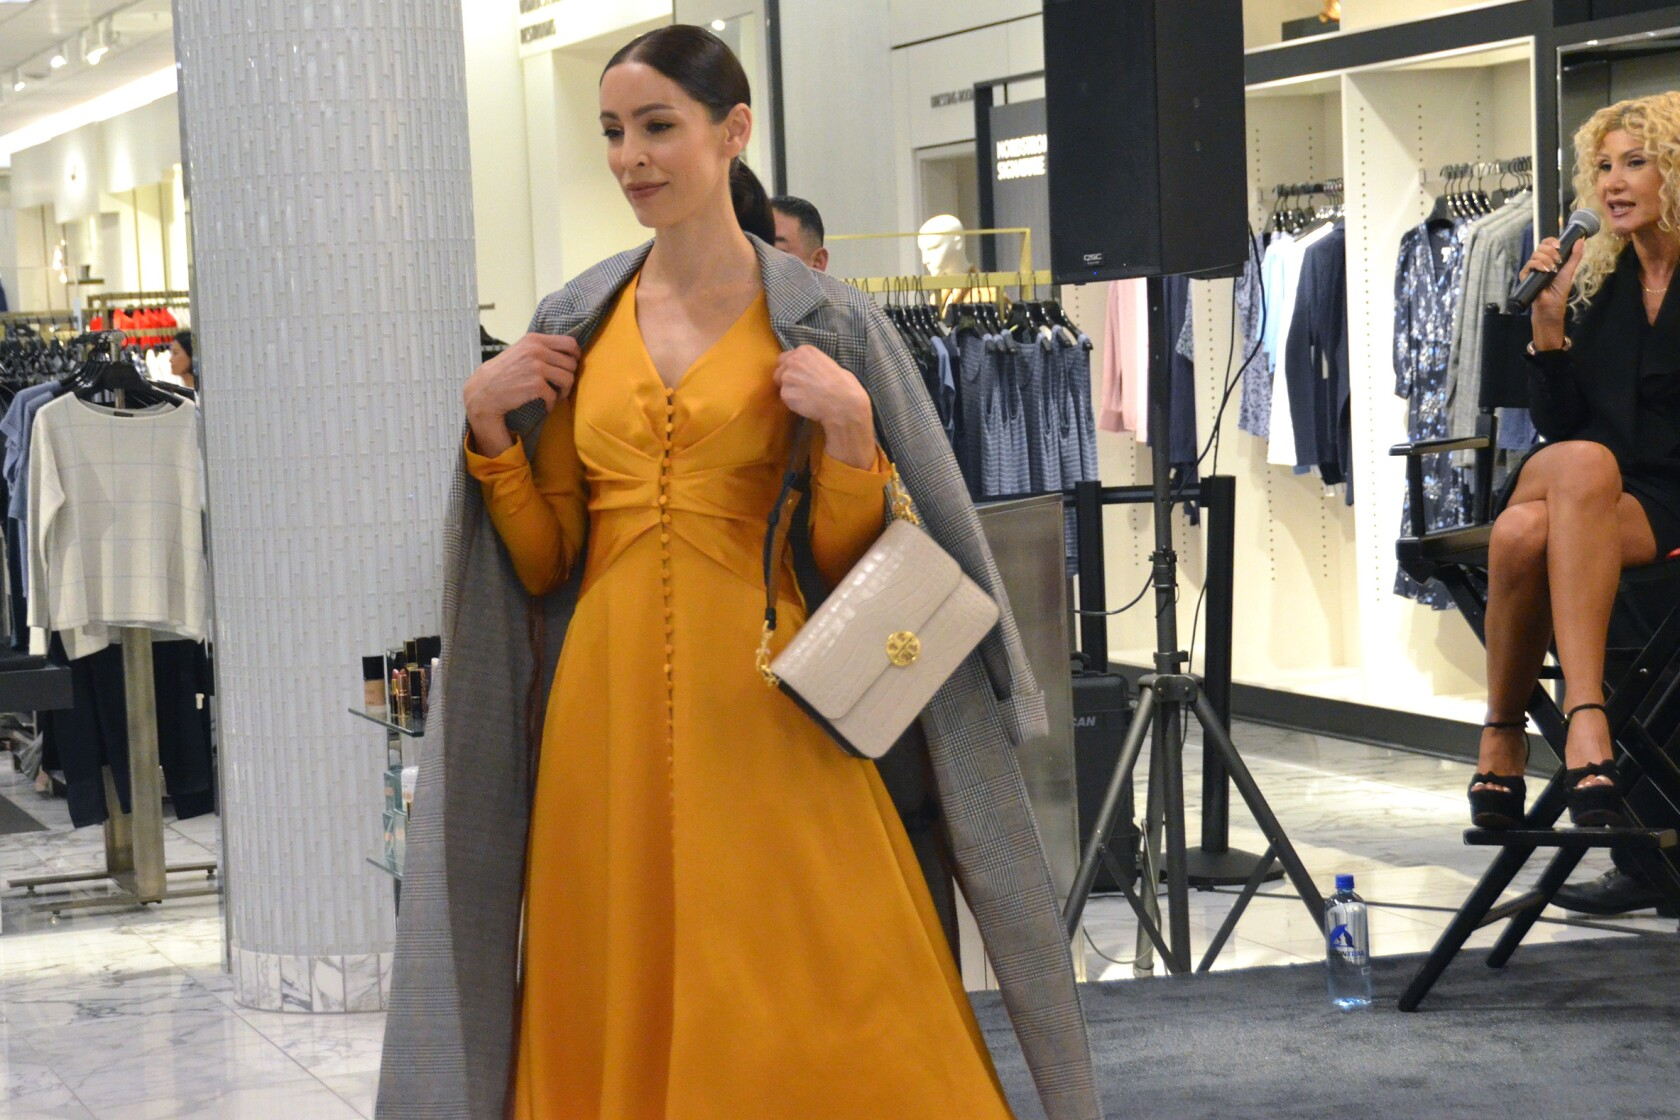 StyleWeekOC puts fashions, experts and celebrities in spotlight in Newport Beach